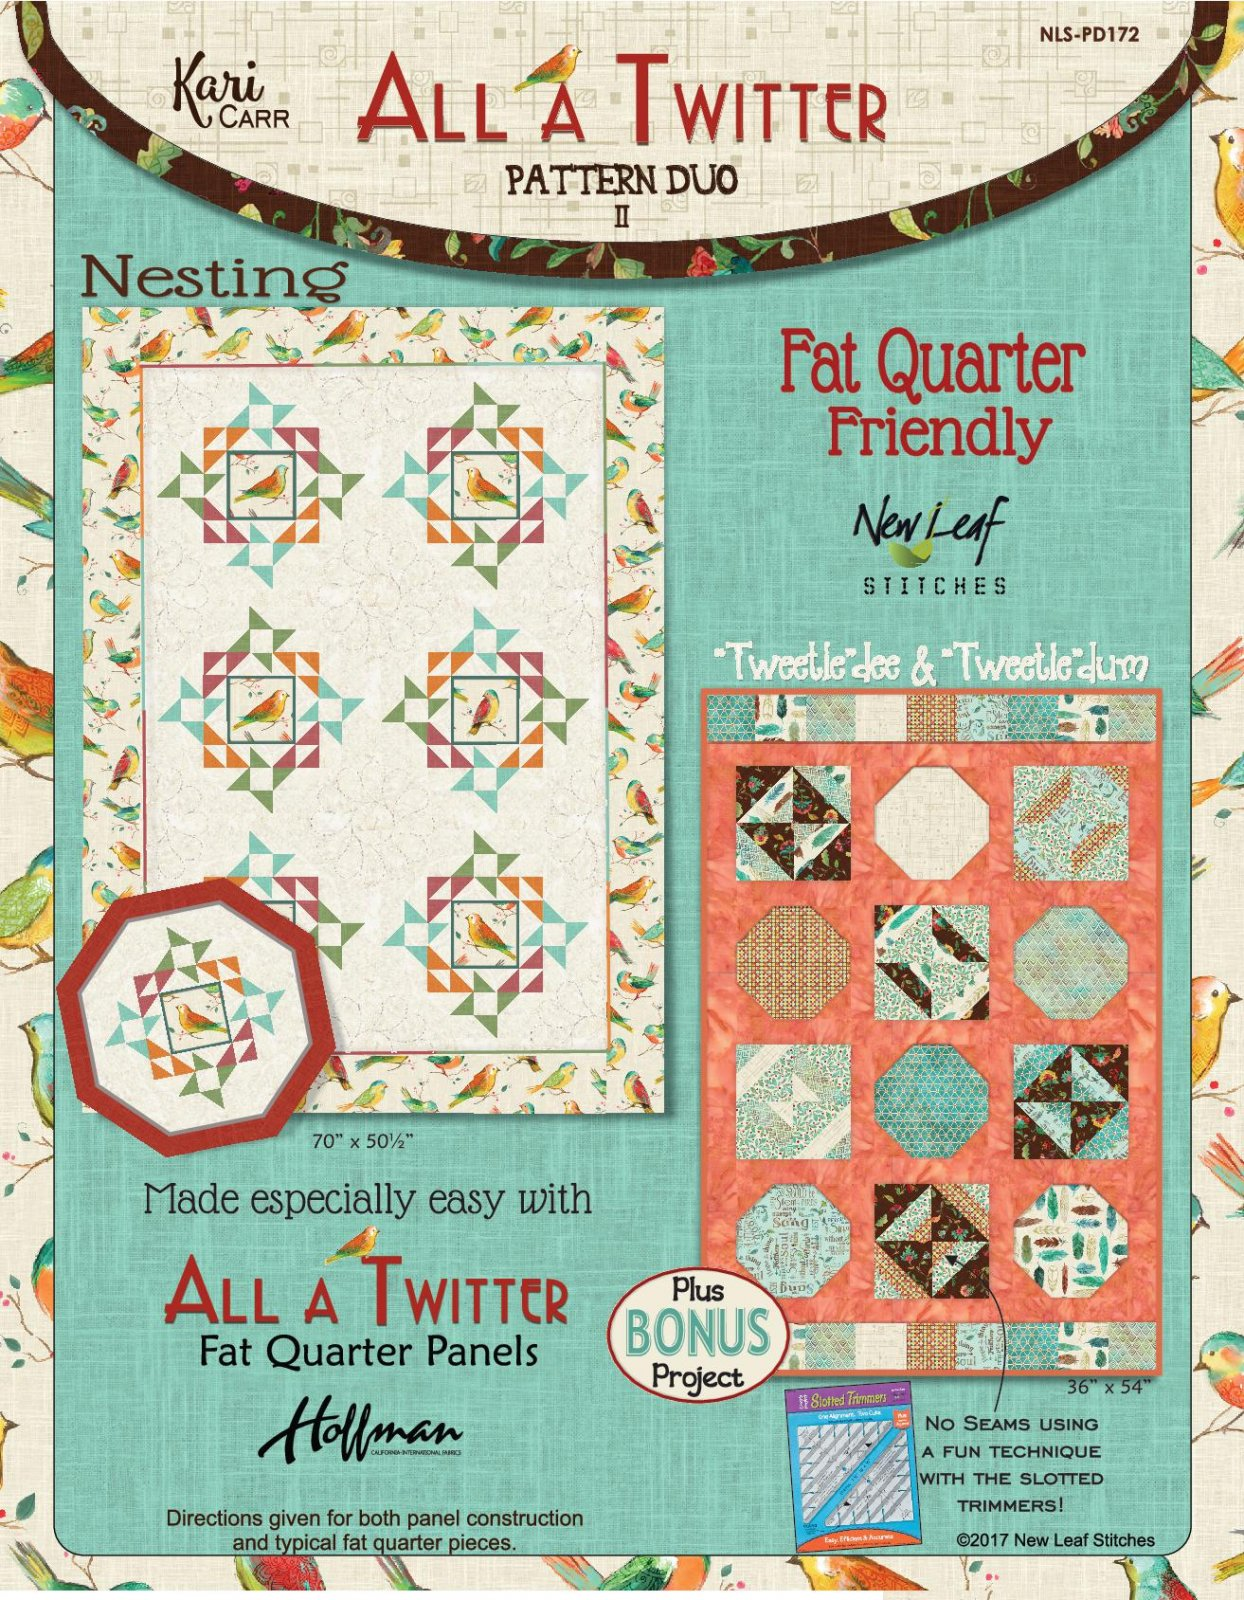 All a Twitter: Pattern Duo II